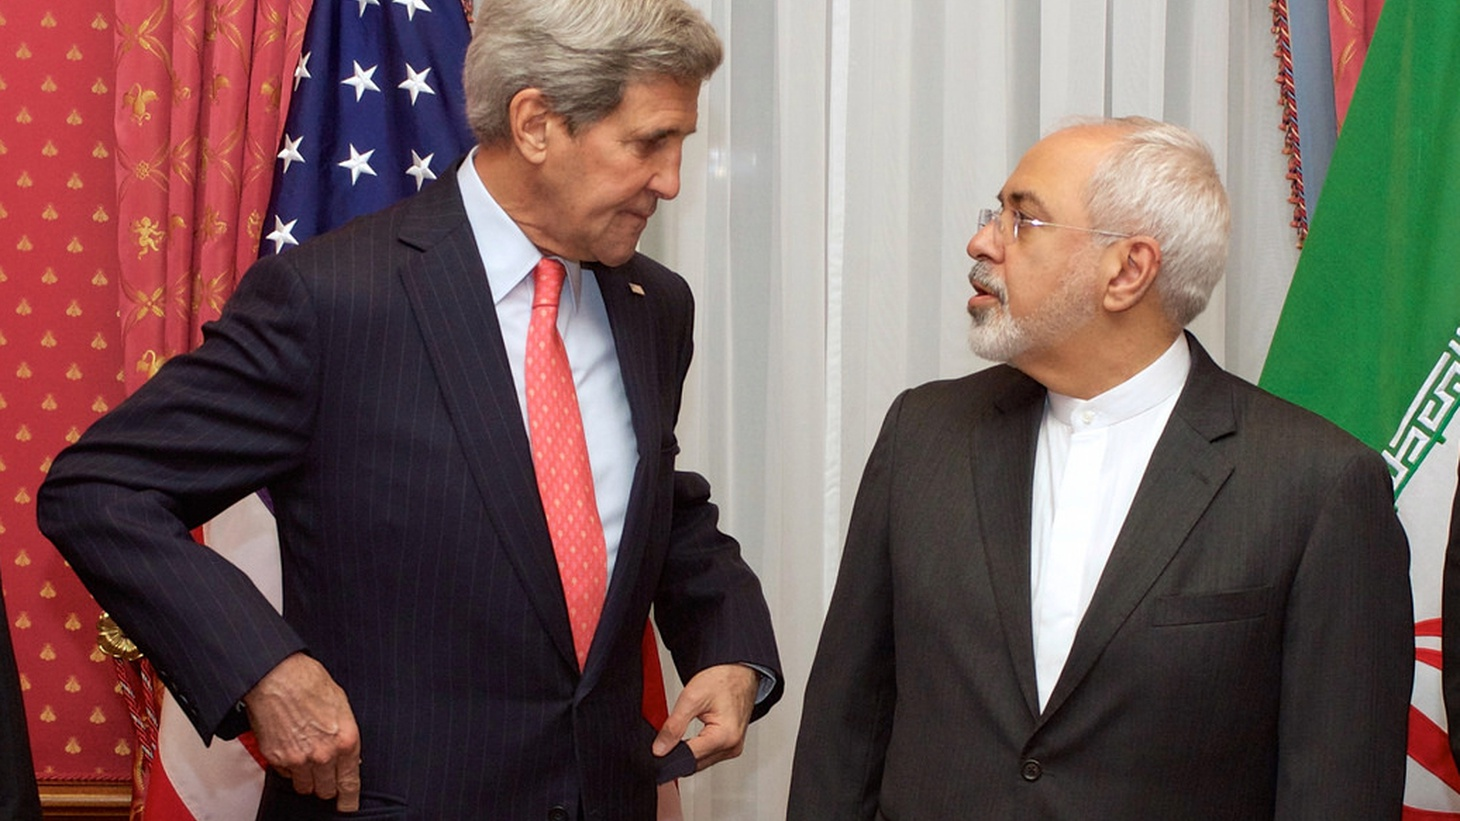 President Obama's nuclear deal with Iran is a major issue in the presidential campaign, and relations between the two countries are still contentious.  